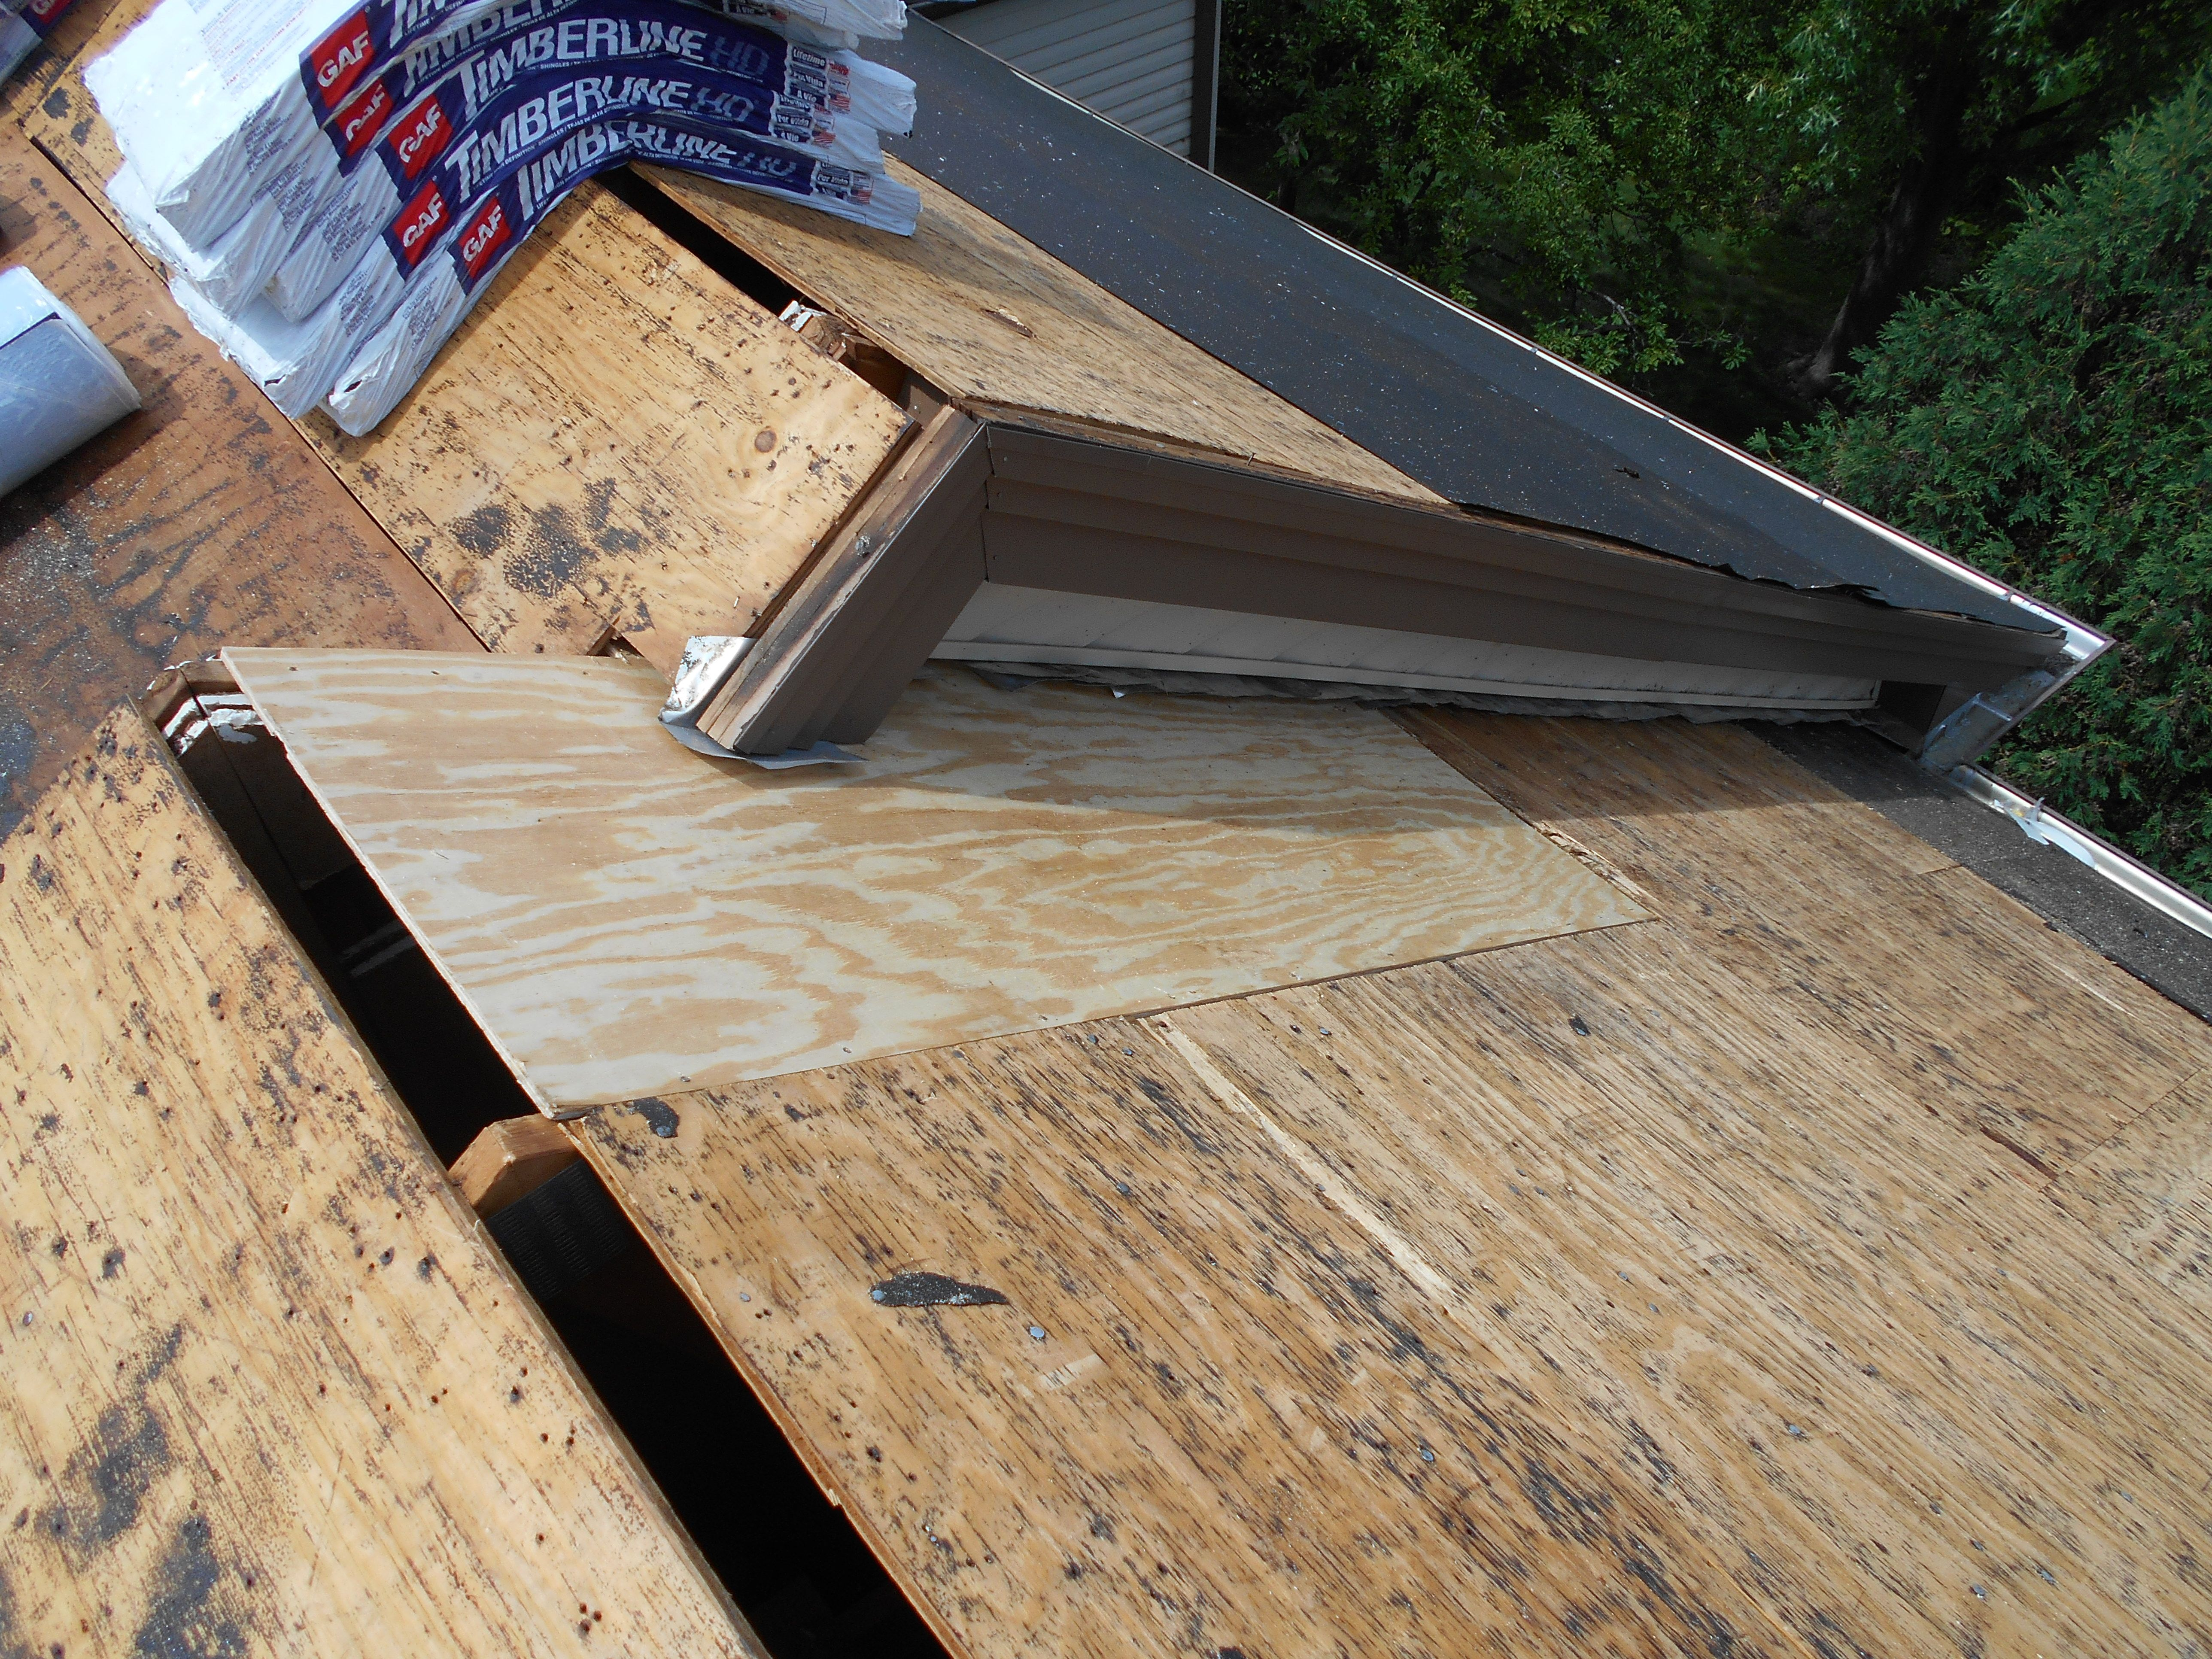 Multi Family Roof Installation New Roofing Total Tear Off Roof Insulation New Roof Shingles Etc Roof Installation Roof Insulation Home Remodeling